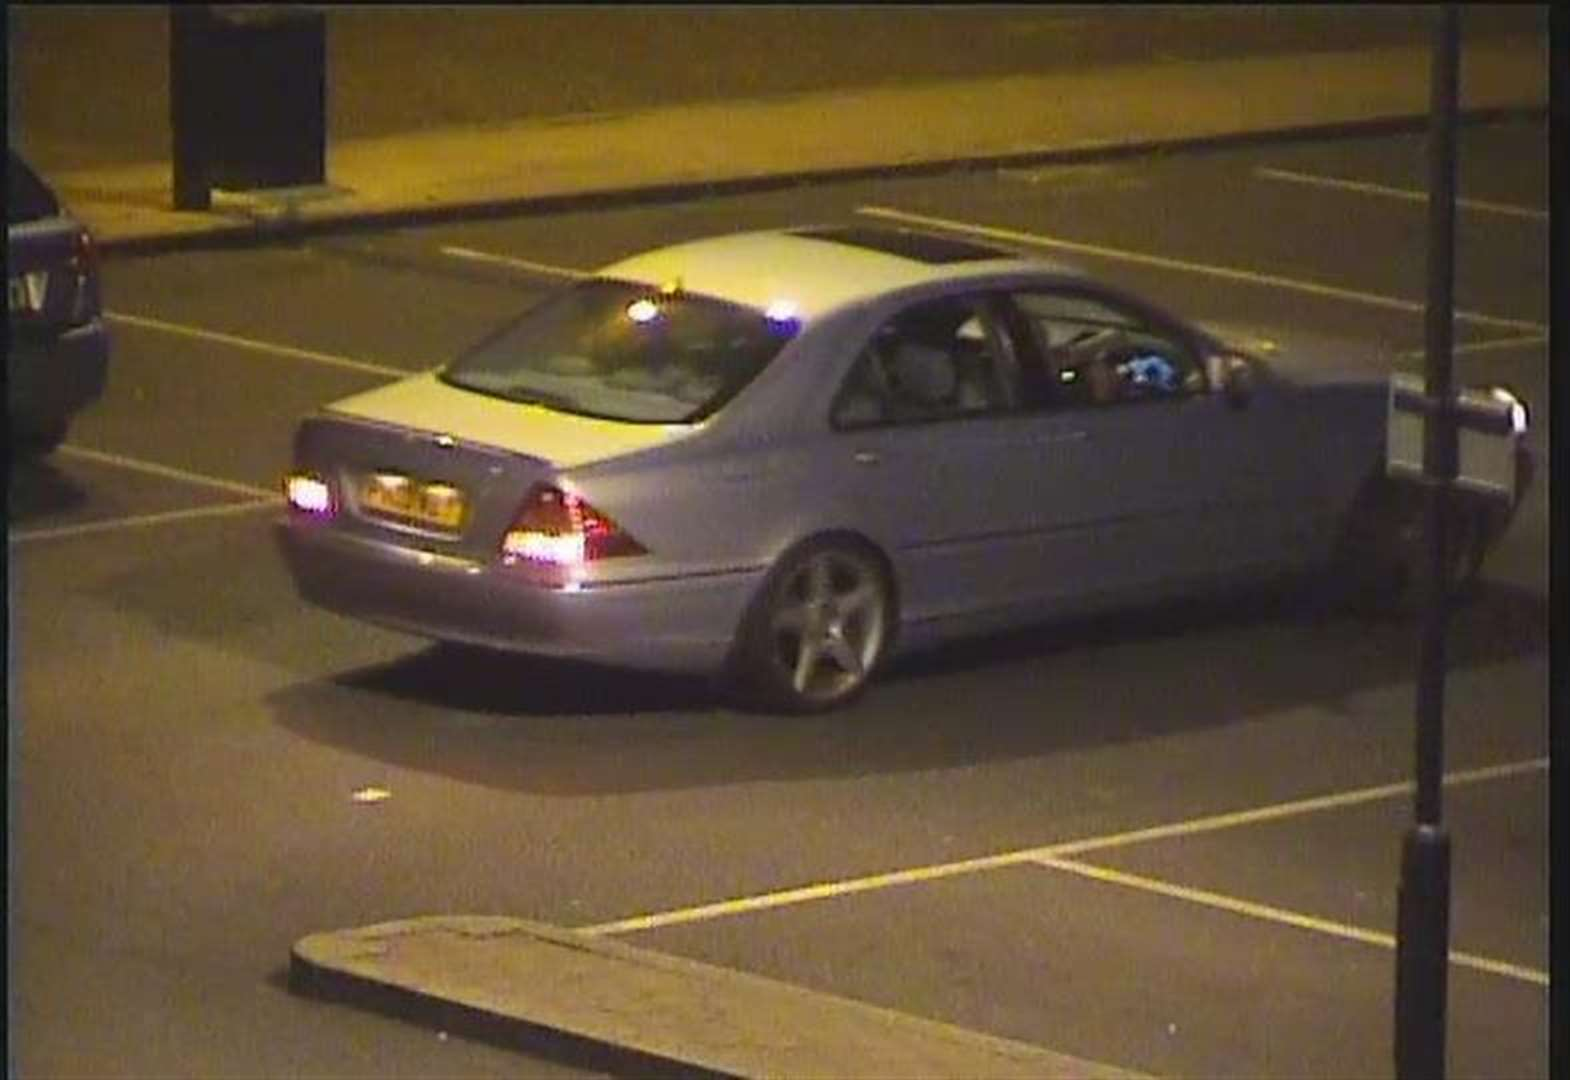 Police in car appeal after assault in Haverhill